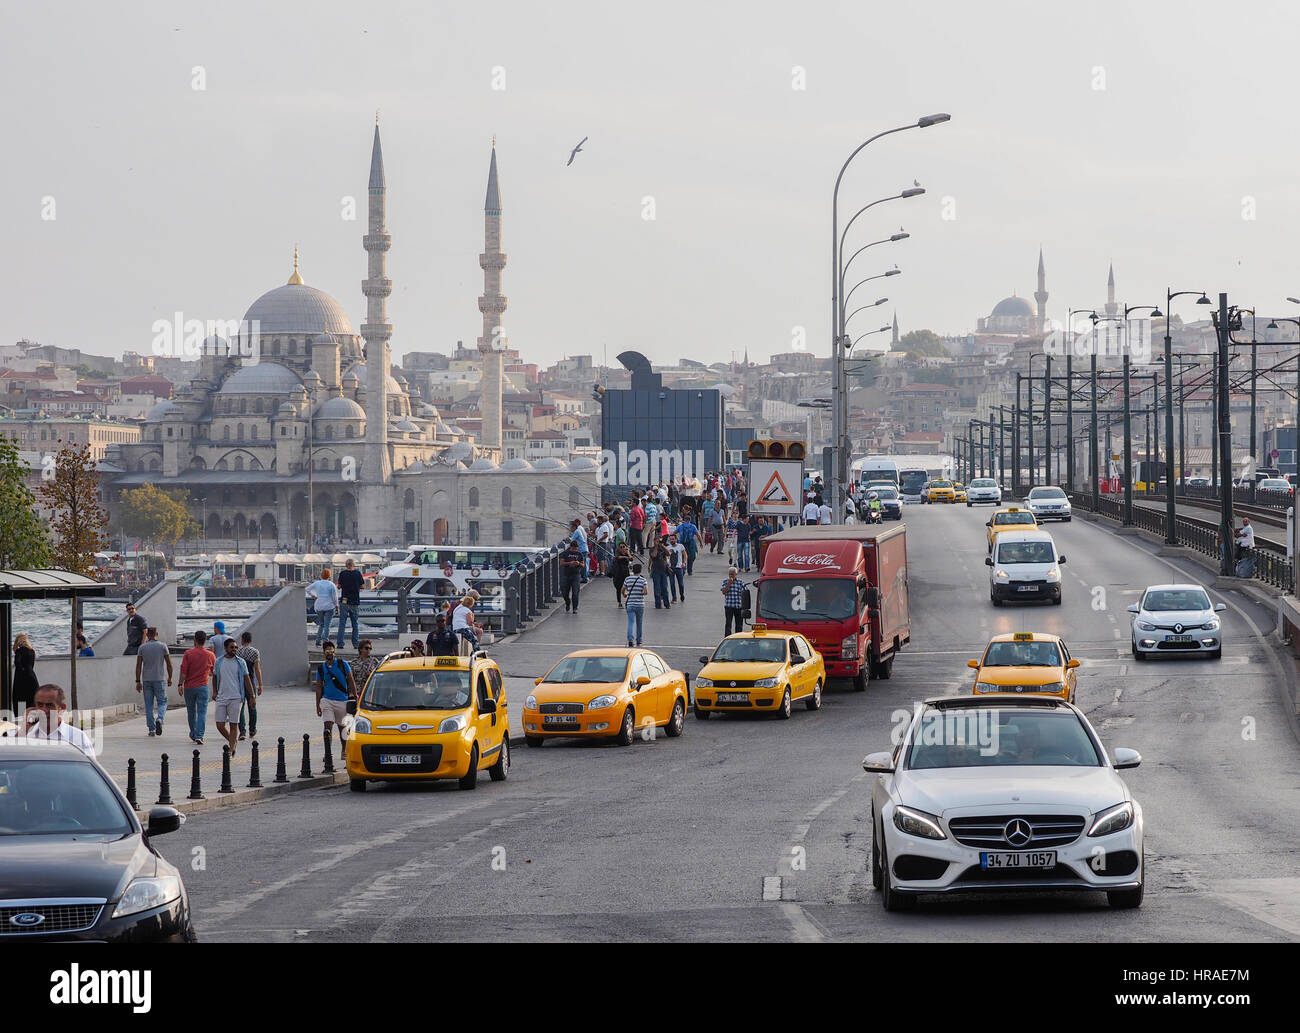 VIEW ACROSS THE GALATA BRIDGE WITH TAXIS IN FOREGROUND AND NEW MOSQUE IN BACKGROUND,GOLDEN HORN,  ISTANBUL TURKEY - Stock Image